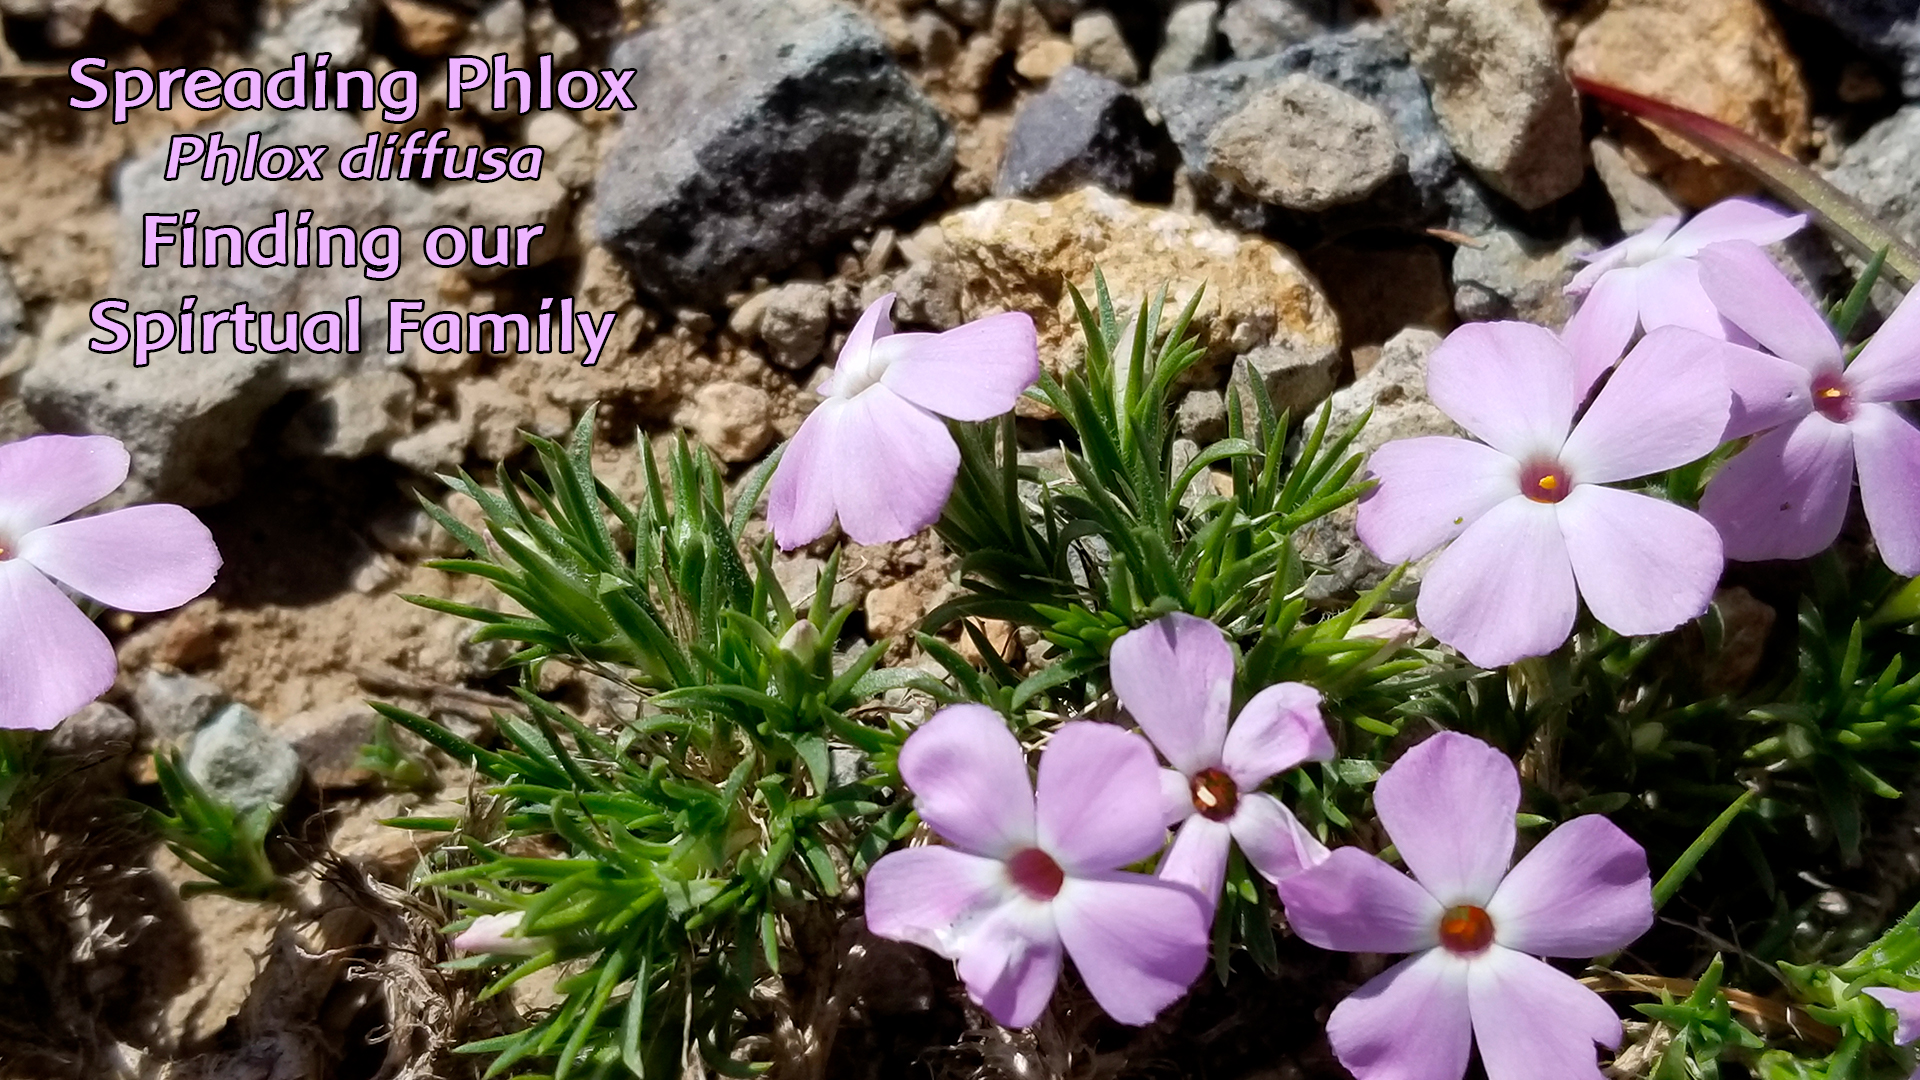 Spreading Phlox: Finding Our Spiritual Family